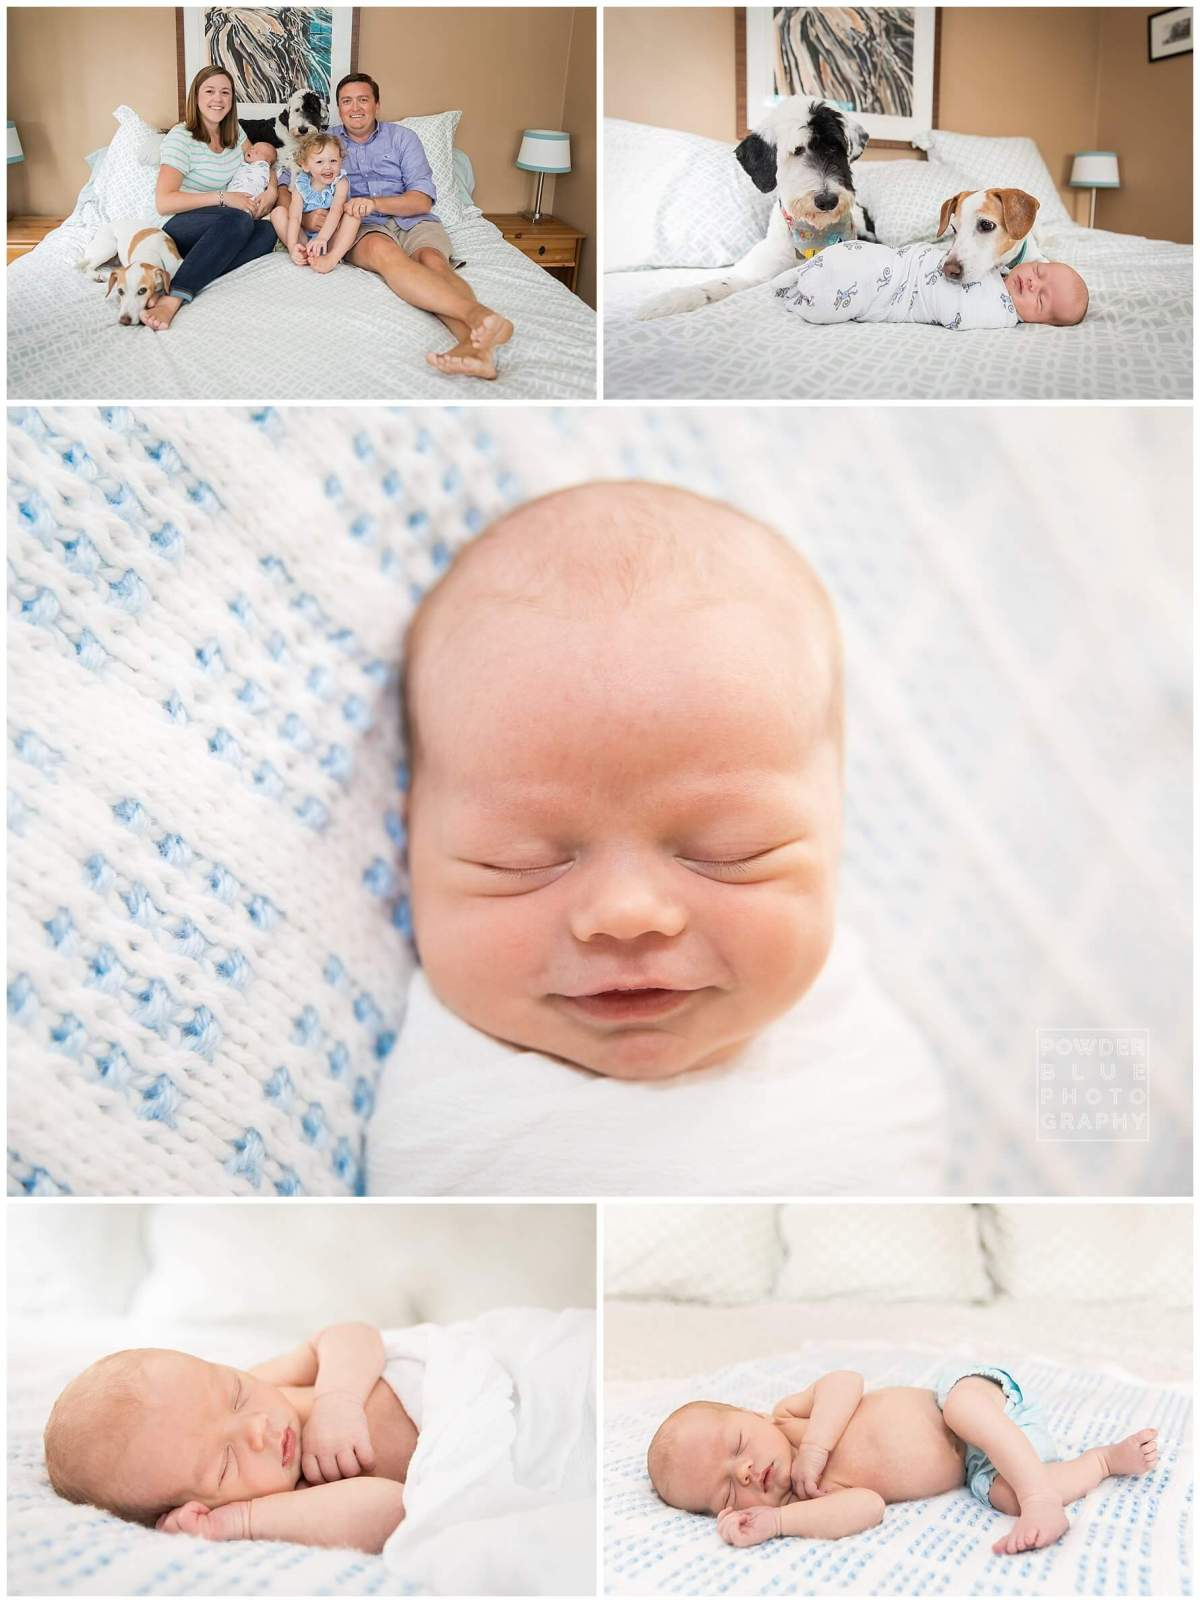 newborn photography session in home lifestyle pittsburgh baby sleeping on a bed